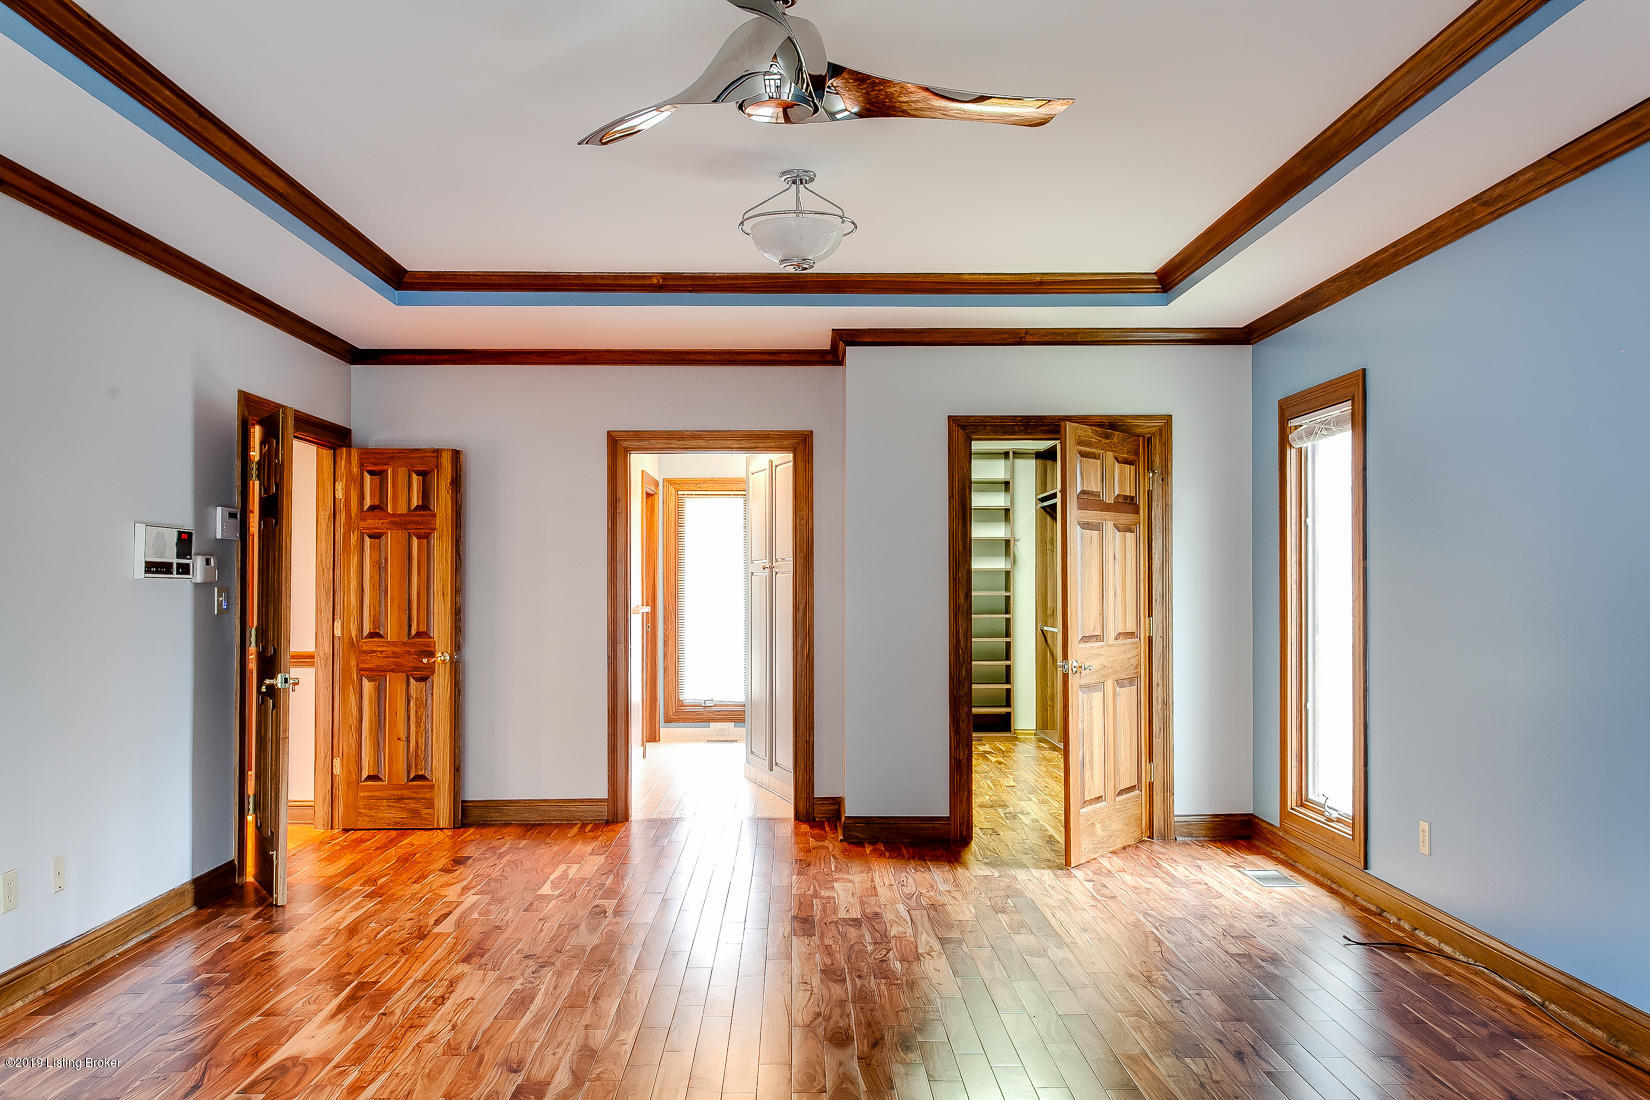 125 Stonehouse Trail, Bardstown, Kentucky 40004, 4 Bedrooms Bedrooms, 17 Rooms Rooms,5 BathroomsBathrooms,Residential,For Sale,Stonehouse,1522929